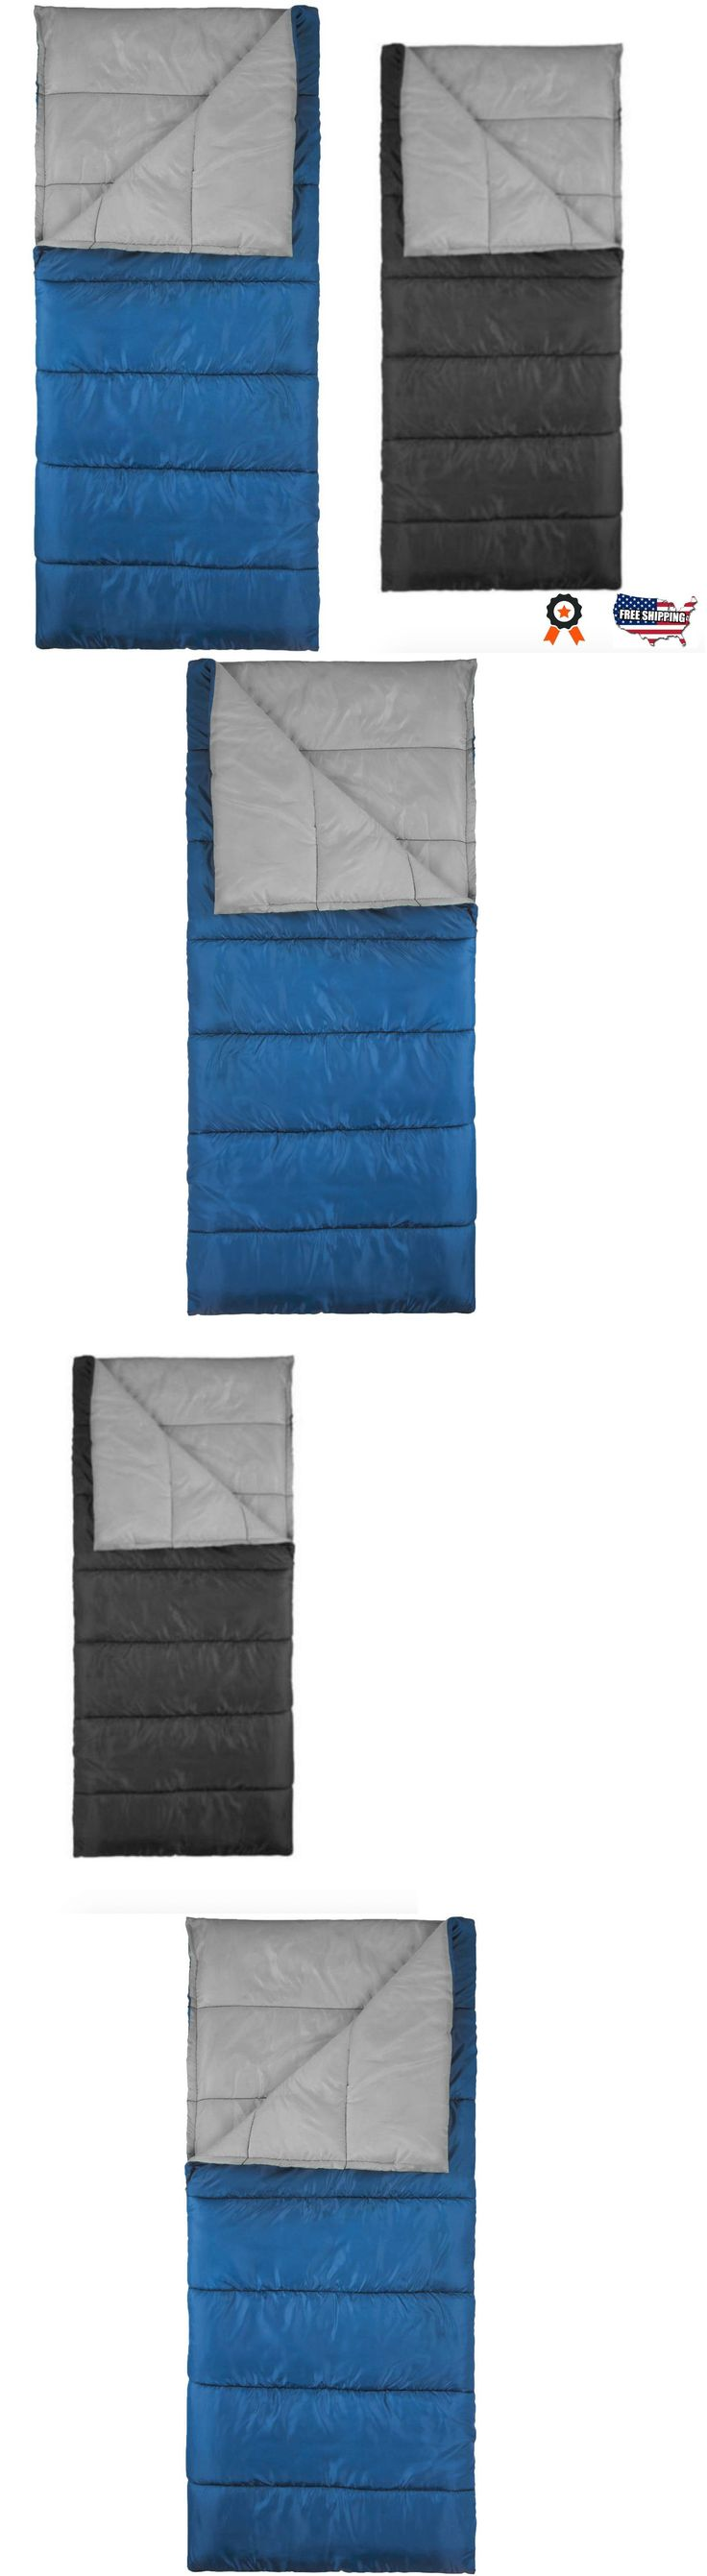 Sleeping Bags 87100: Sleeping Bag Envelope Camping Hiking Insulated Lightweight Warm Outdoor Adult -> BUY IT NOW ONLY: $64.45 on eBay!